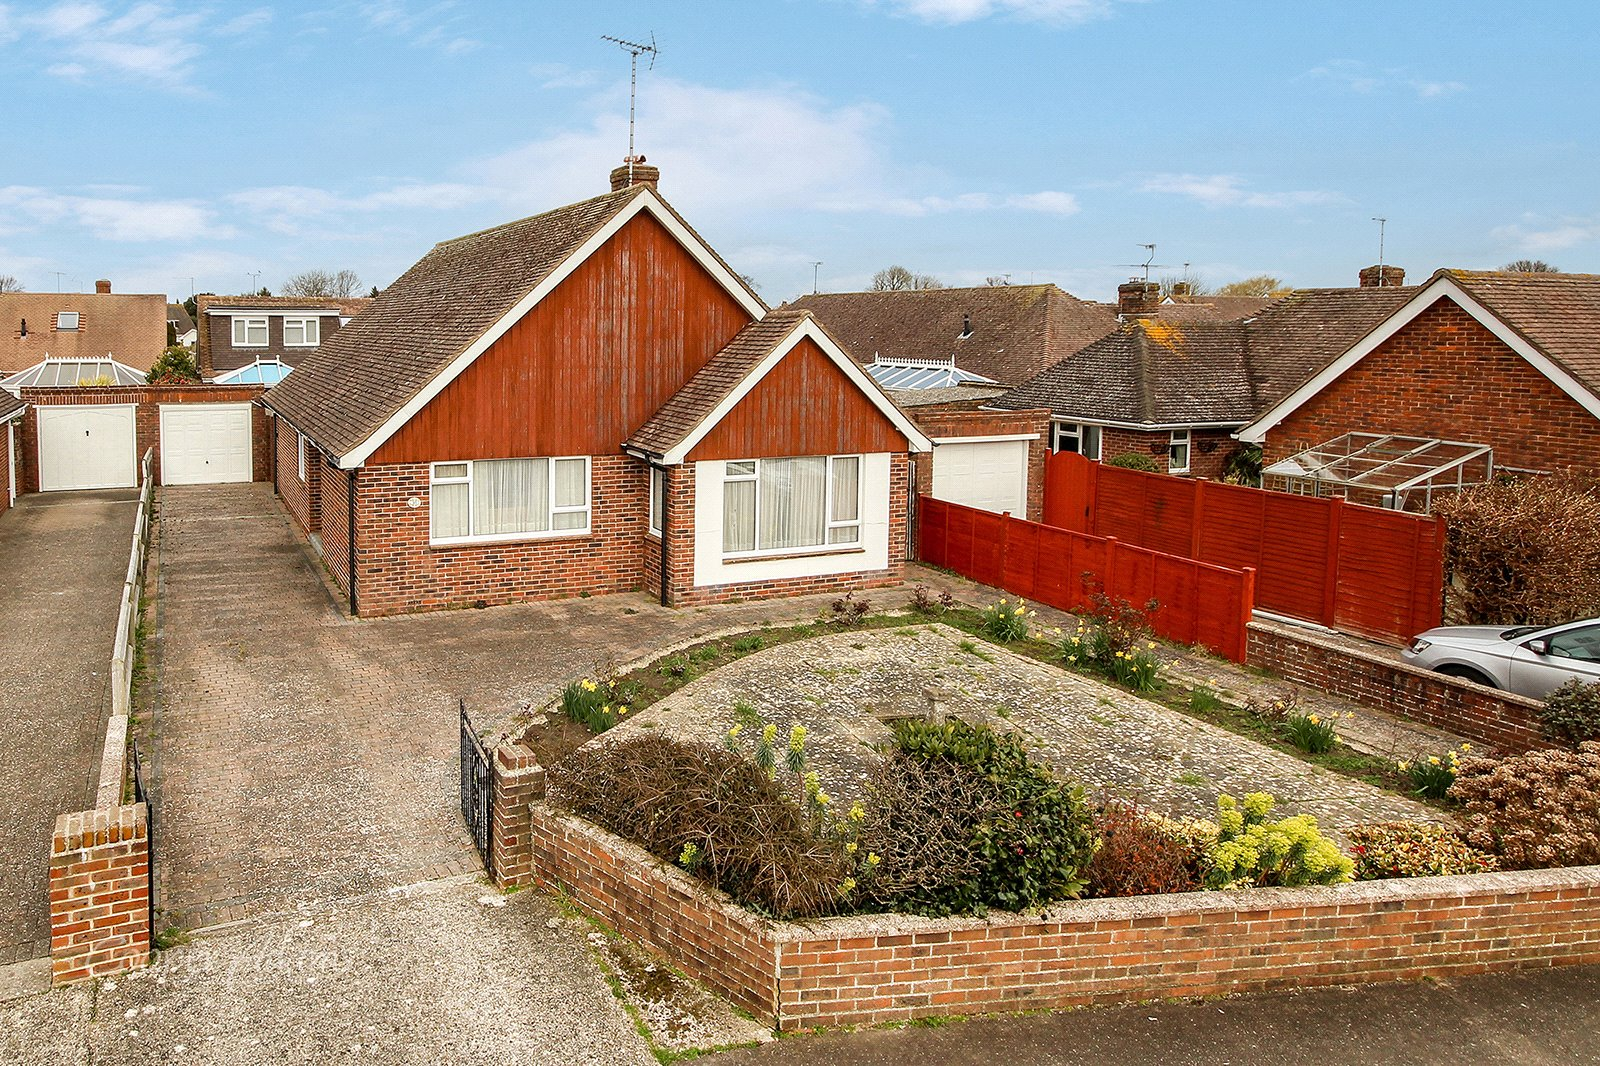 3 bed bungalow for sale in Parry Drive, Rustington, BN16